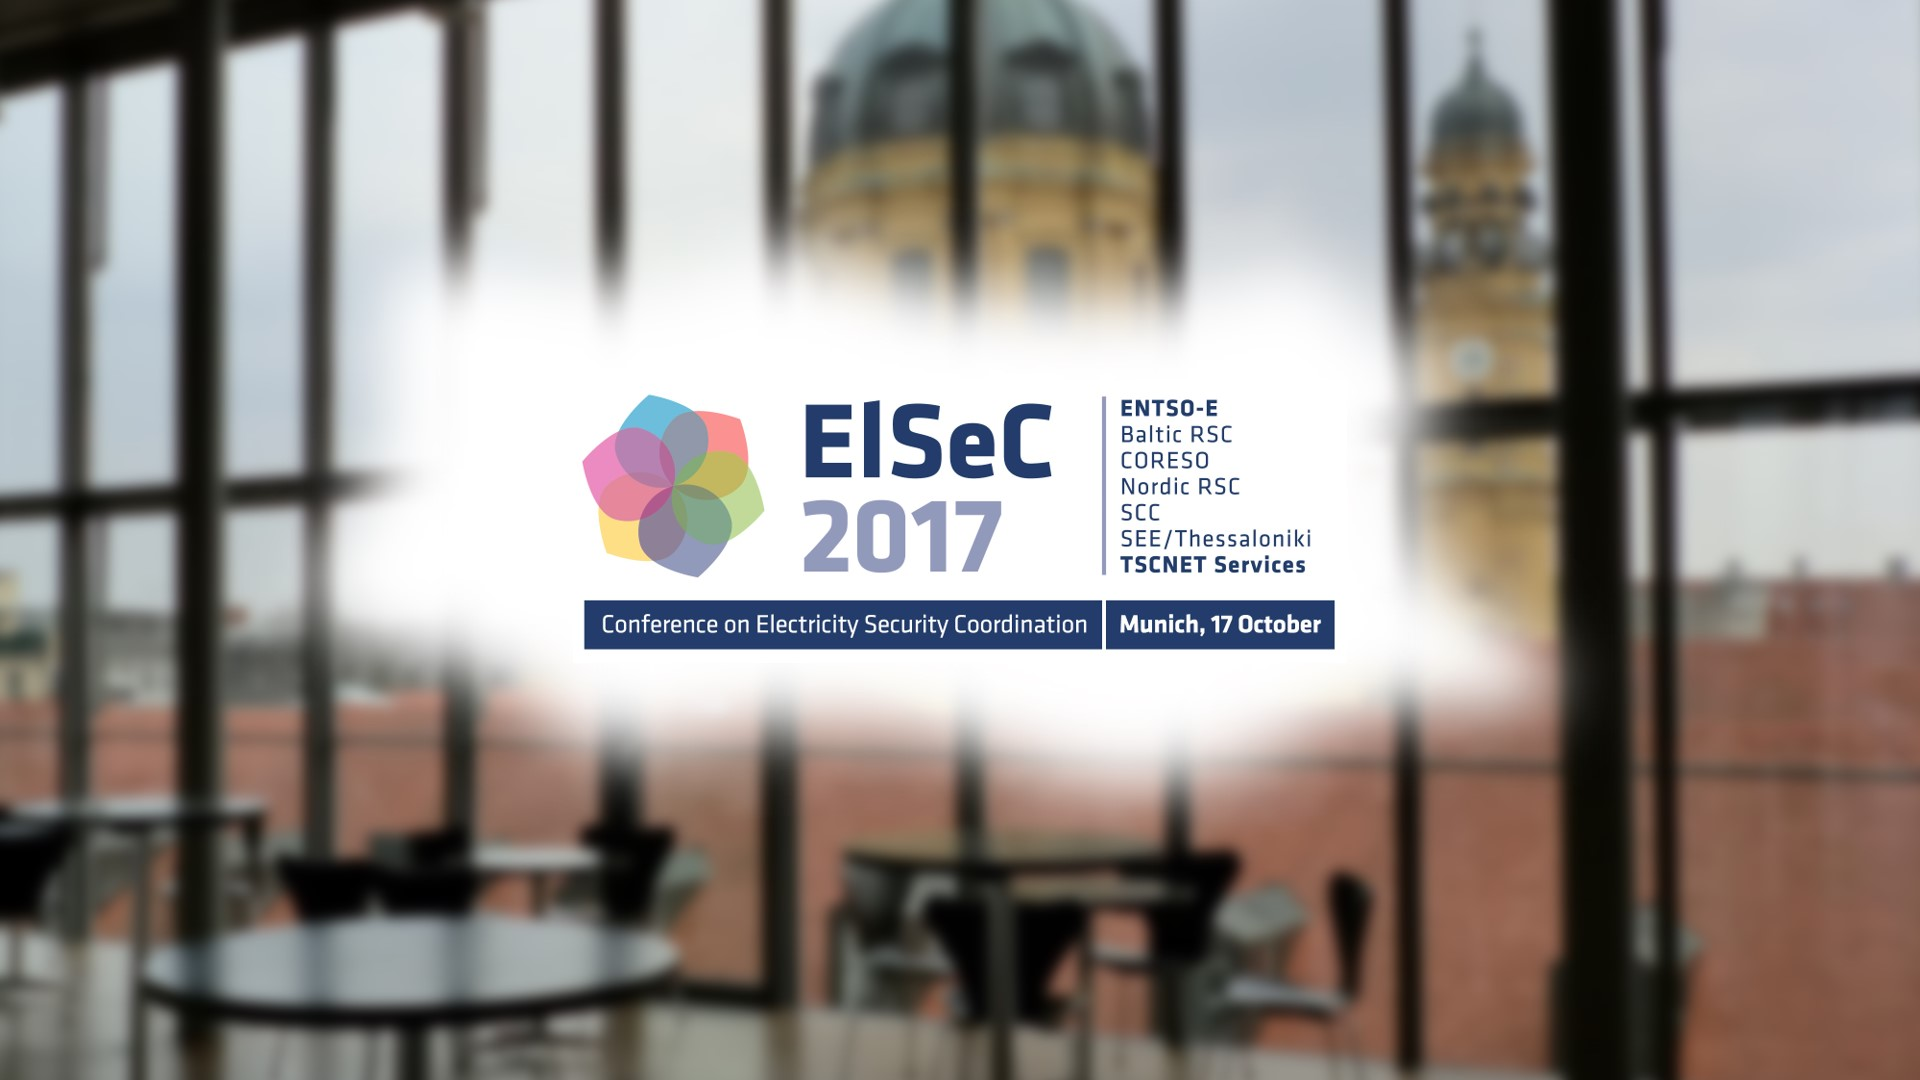 First of a series – ElSeC conference on 17 October